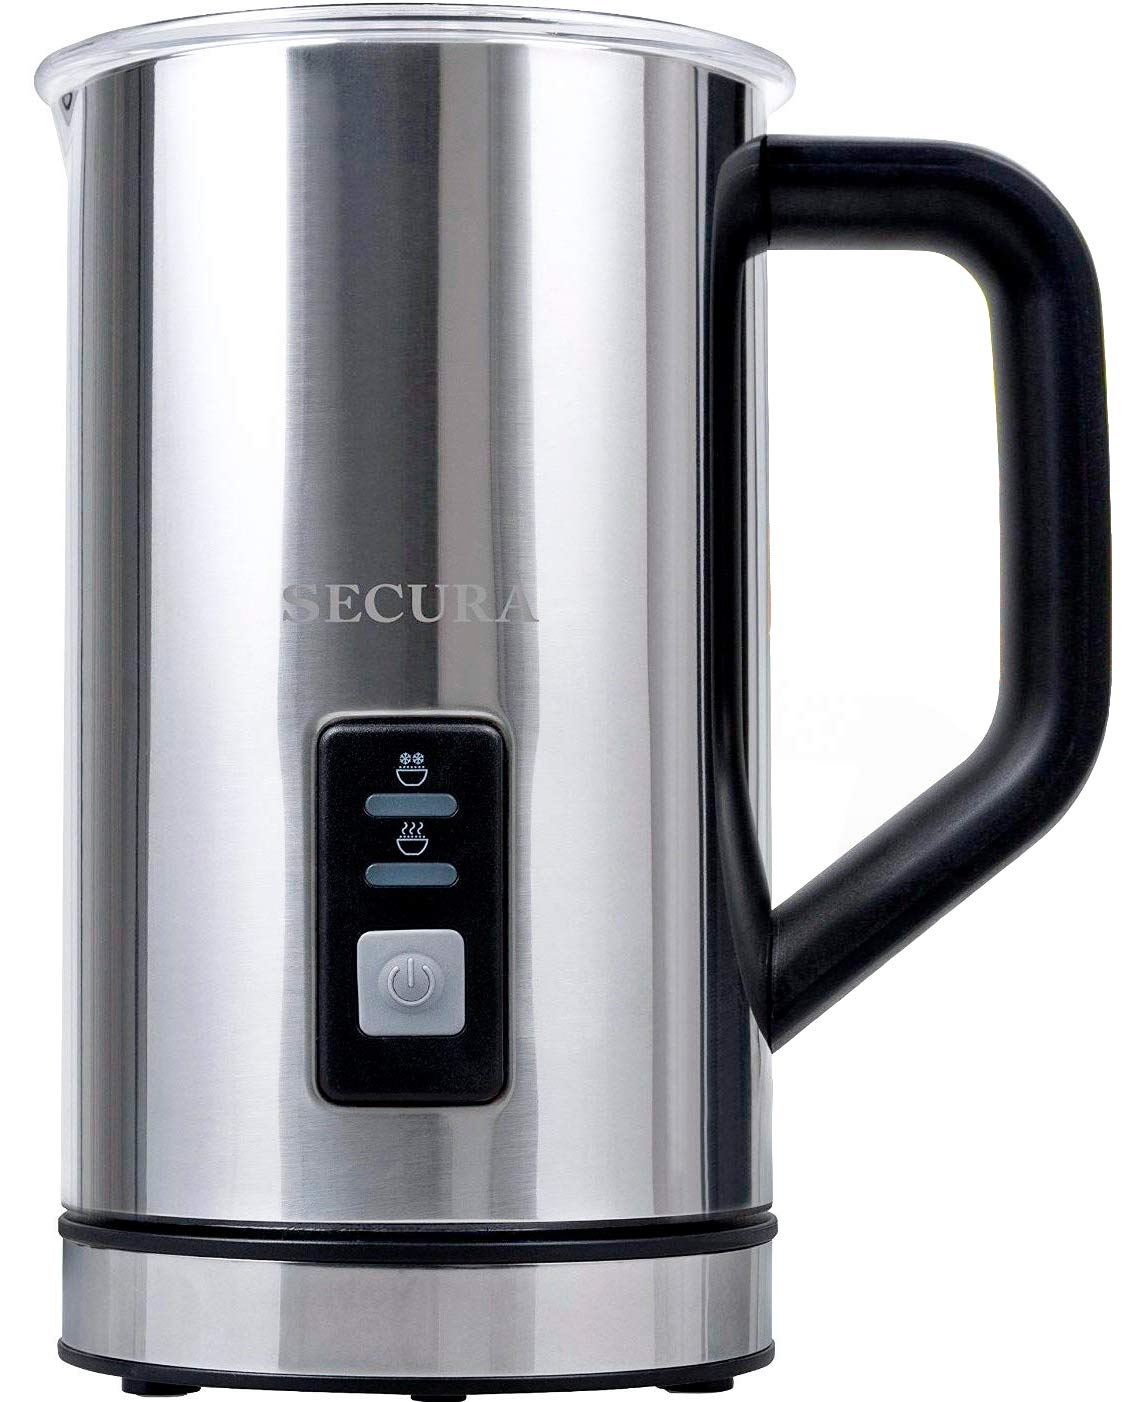 ??secura automatic electric milk frother and warmer